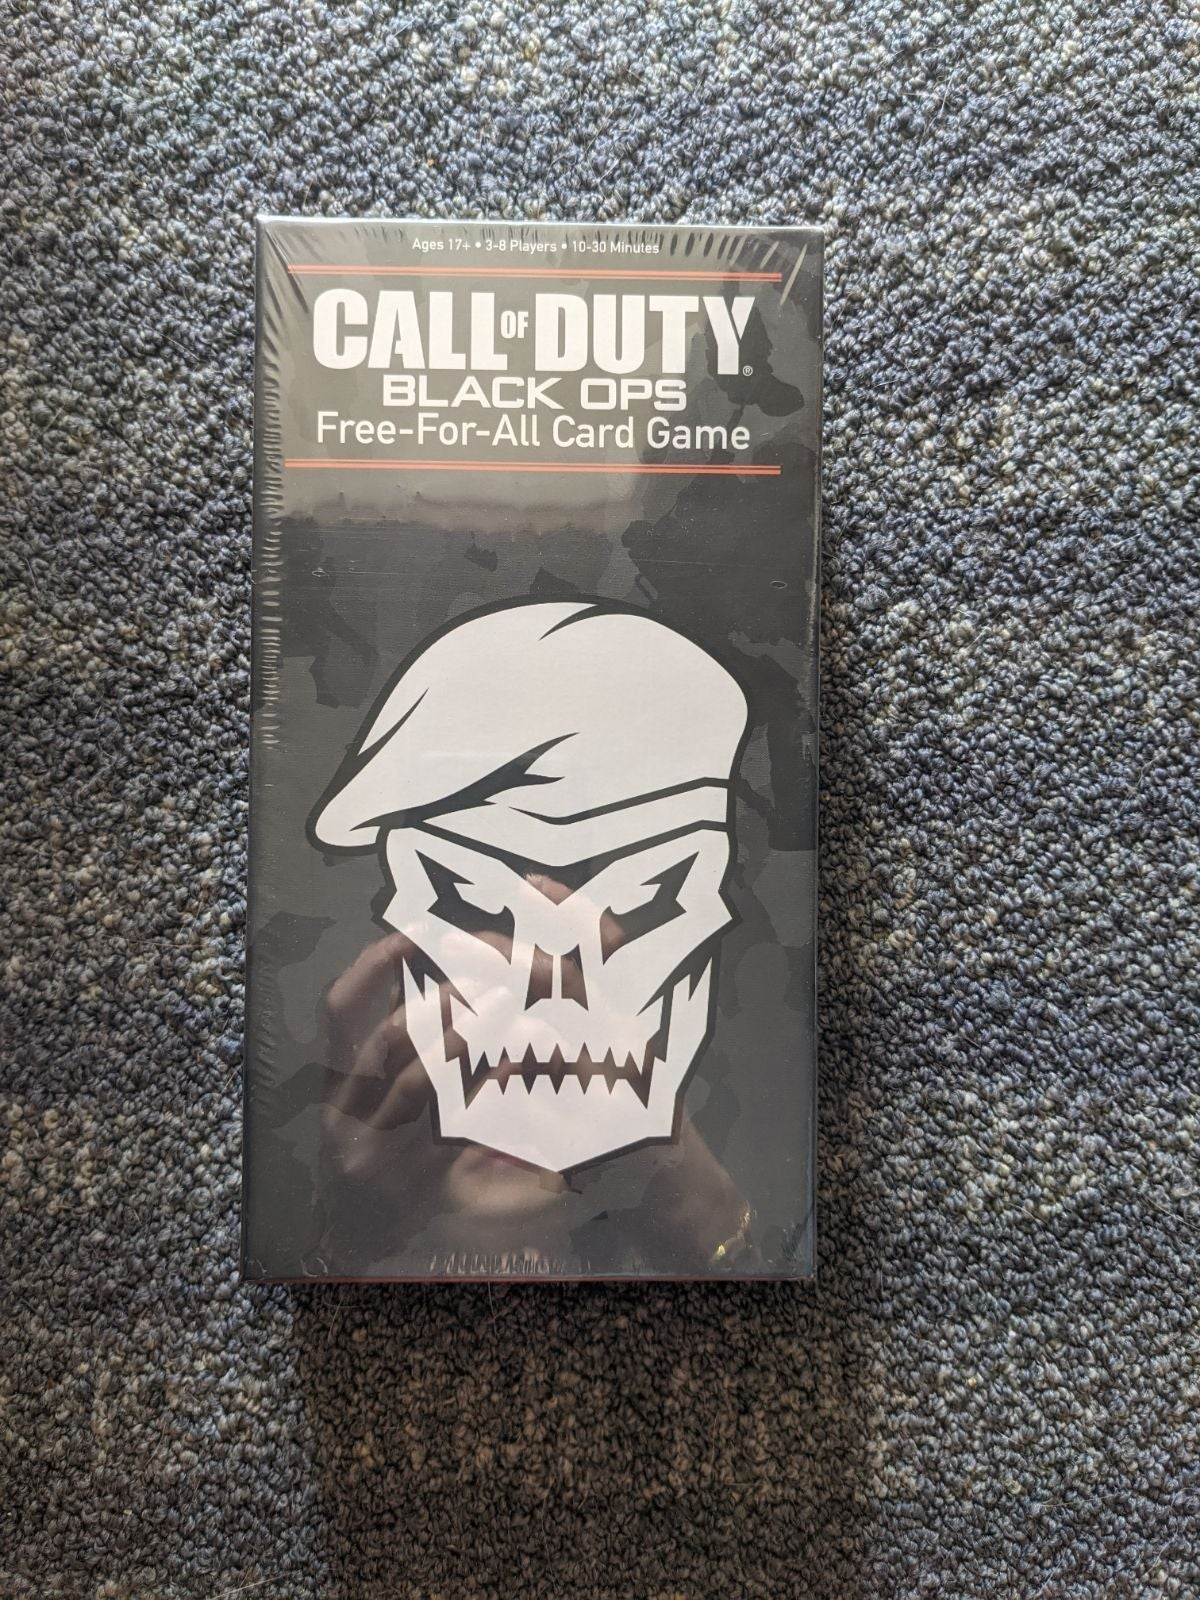 Call of Duty Black Ops Free-For-All Card